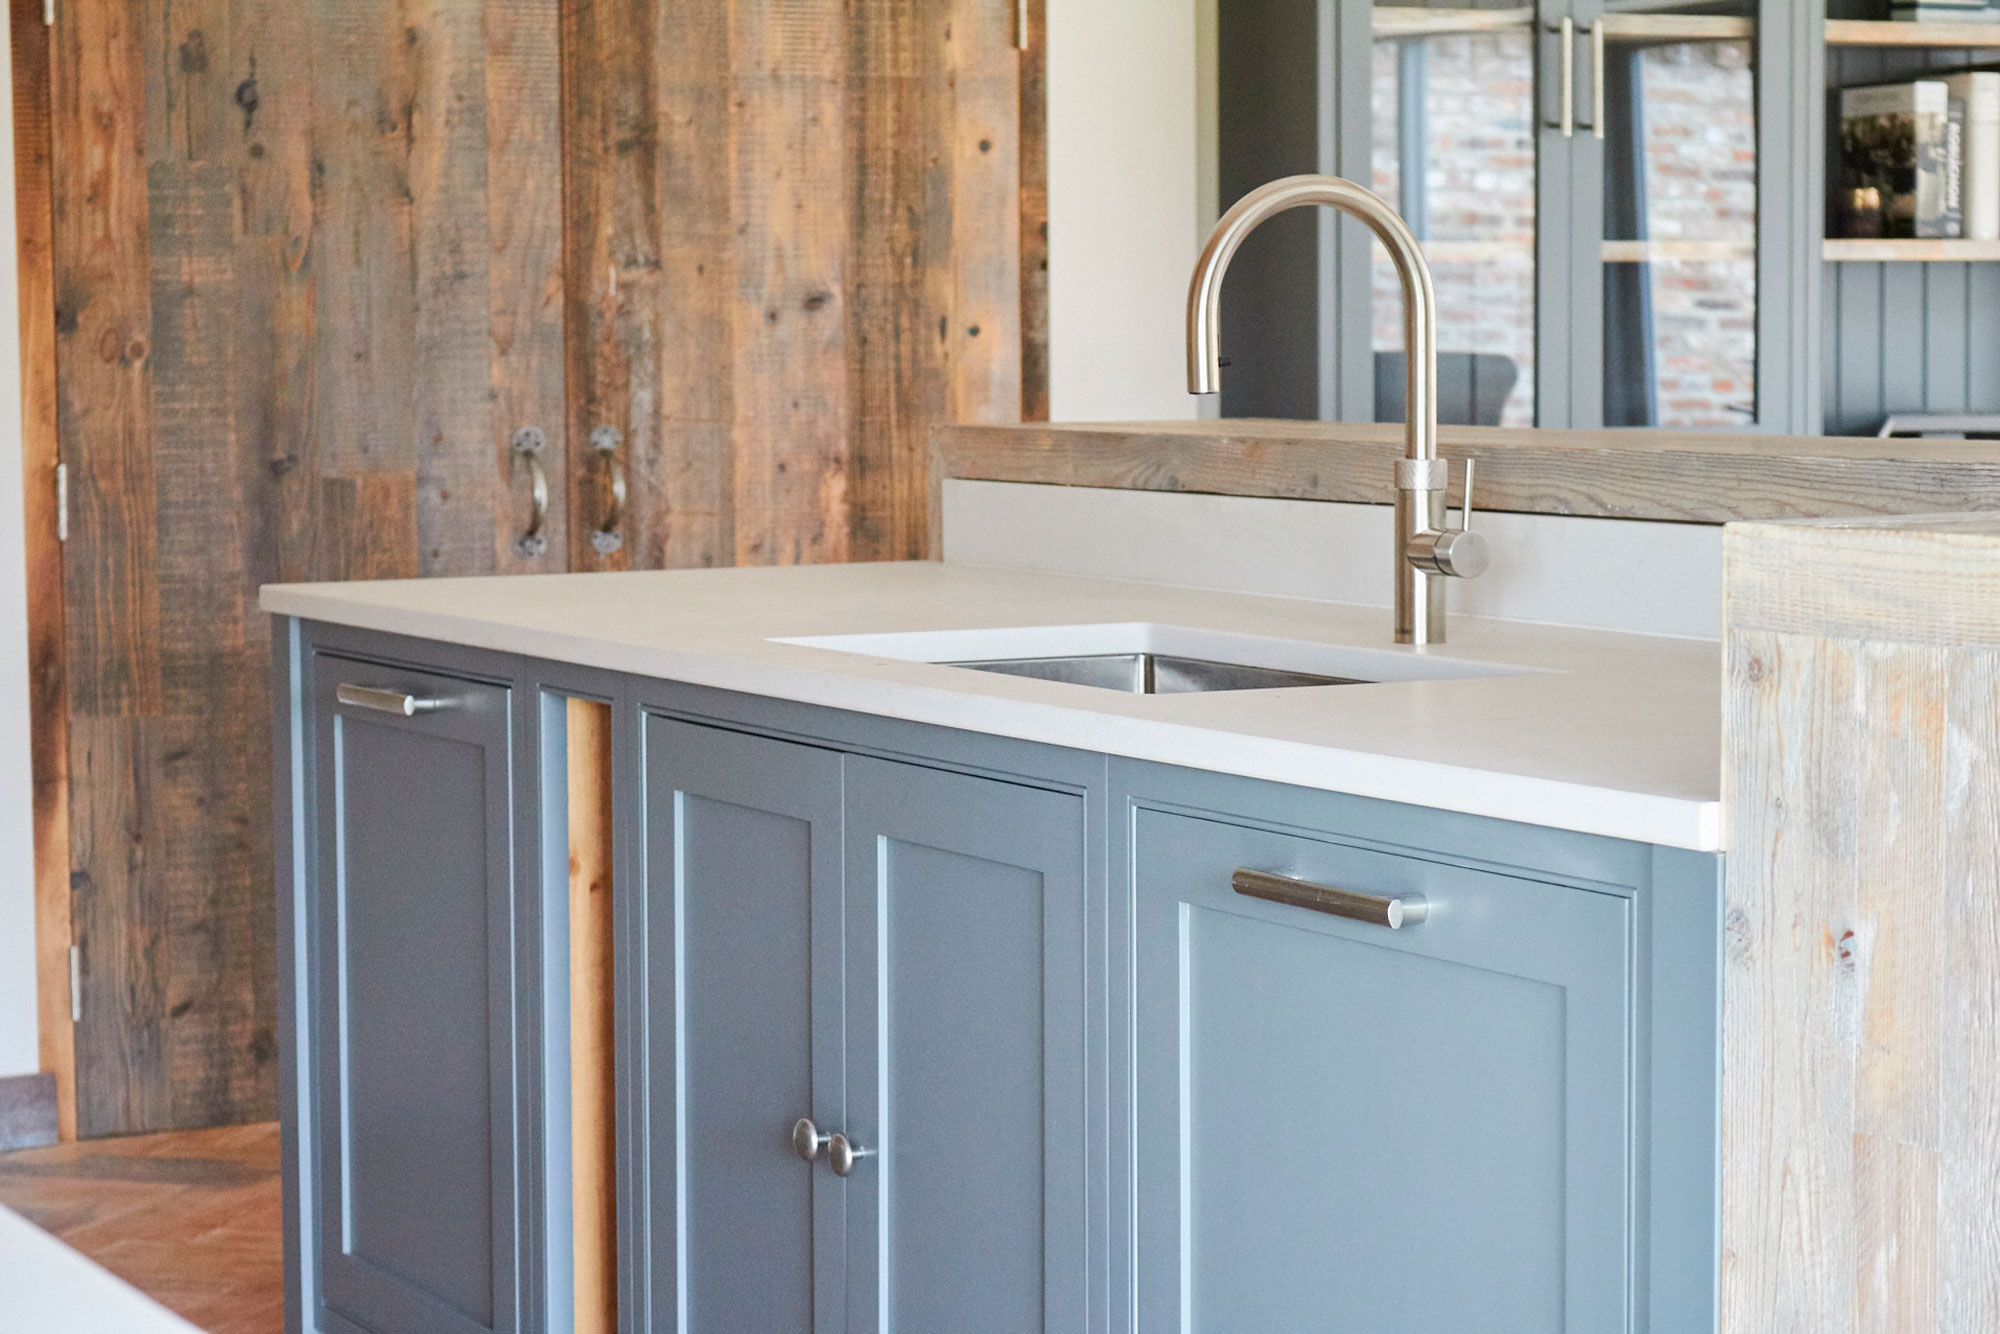 Painted kitchen cabinets with inset stainless steel sink and tap